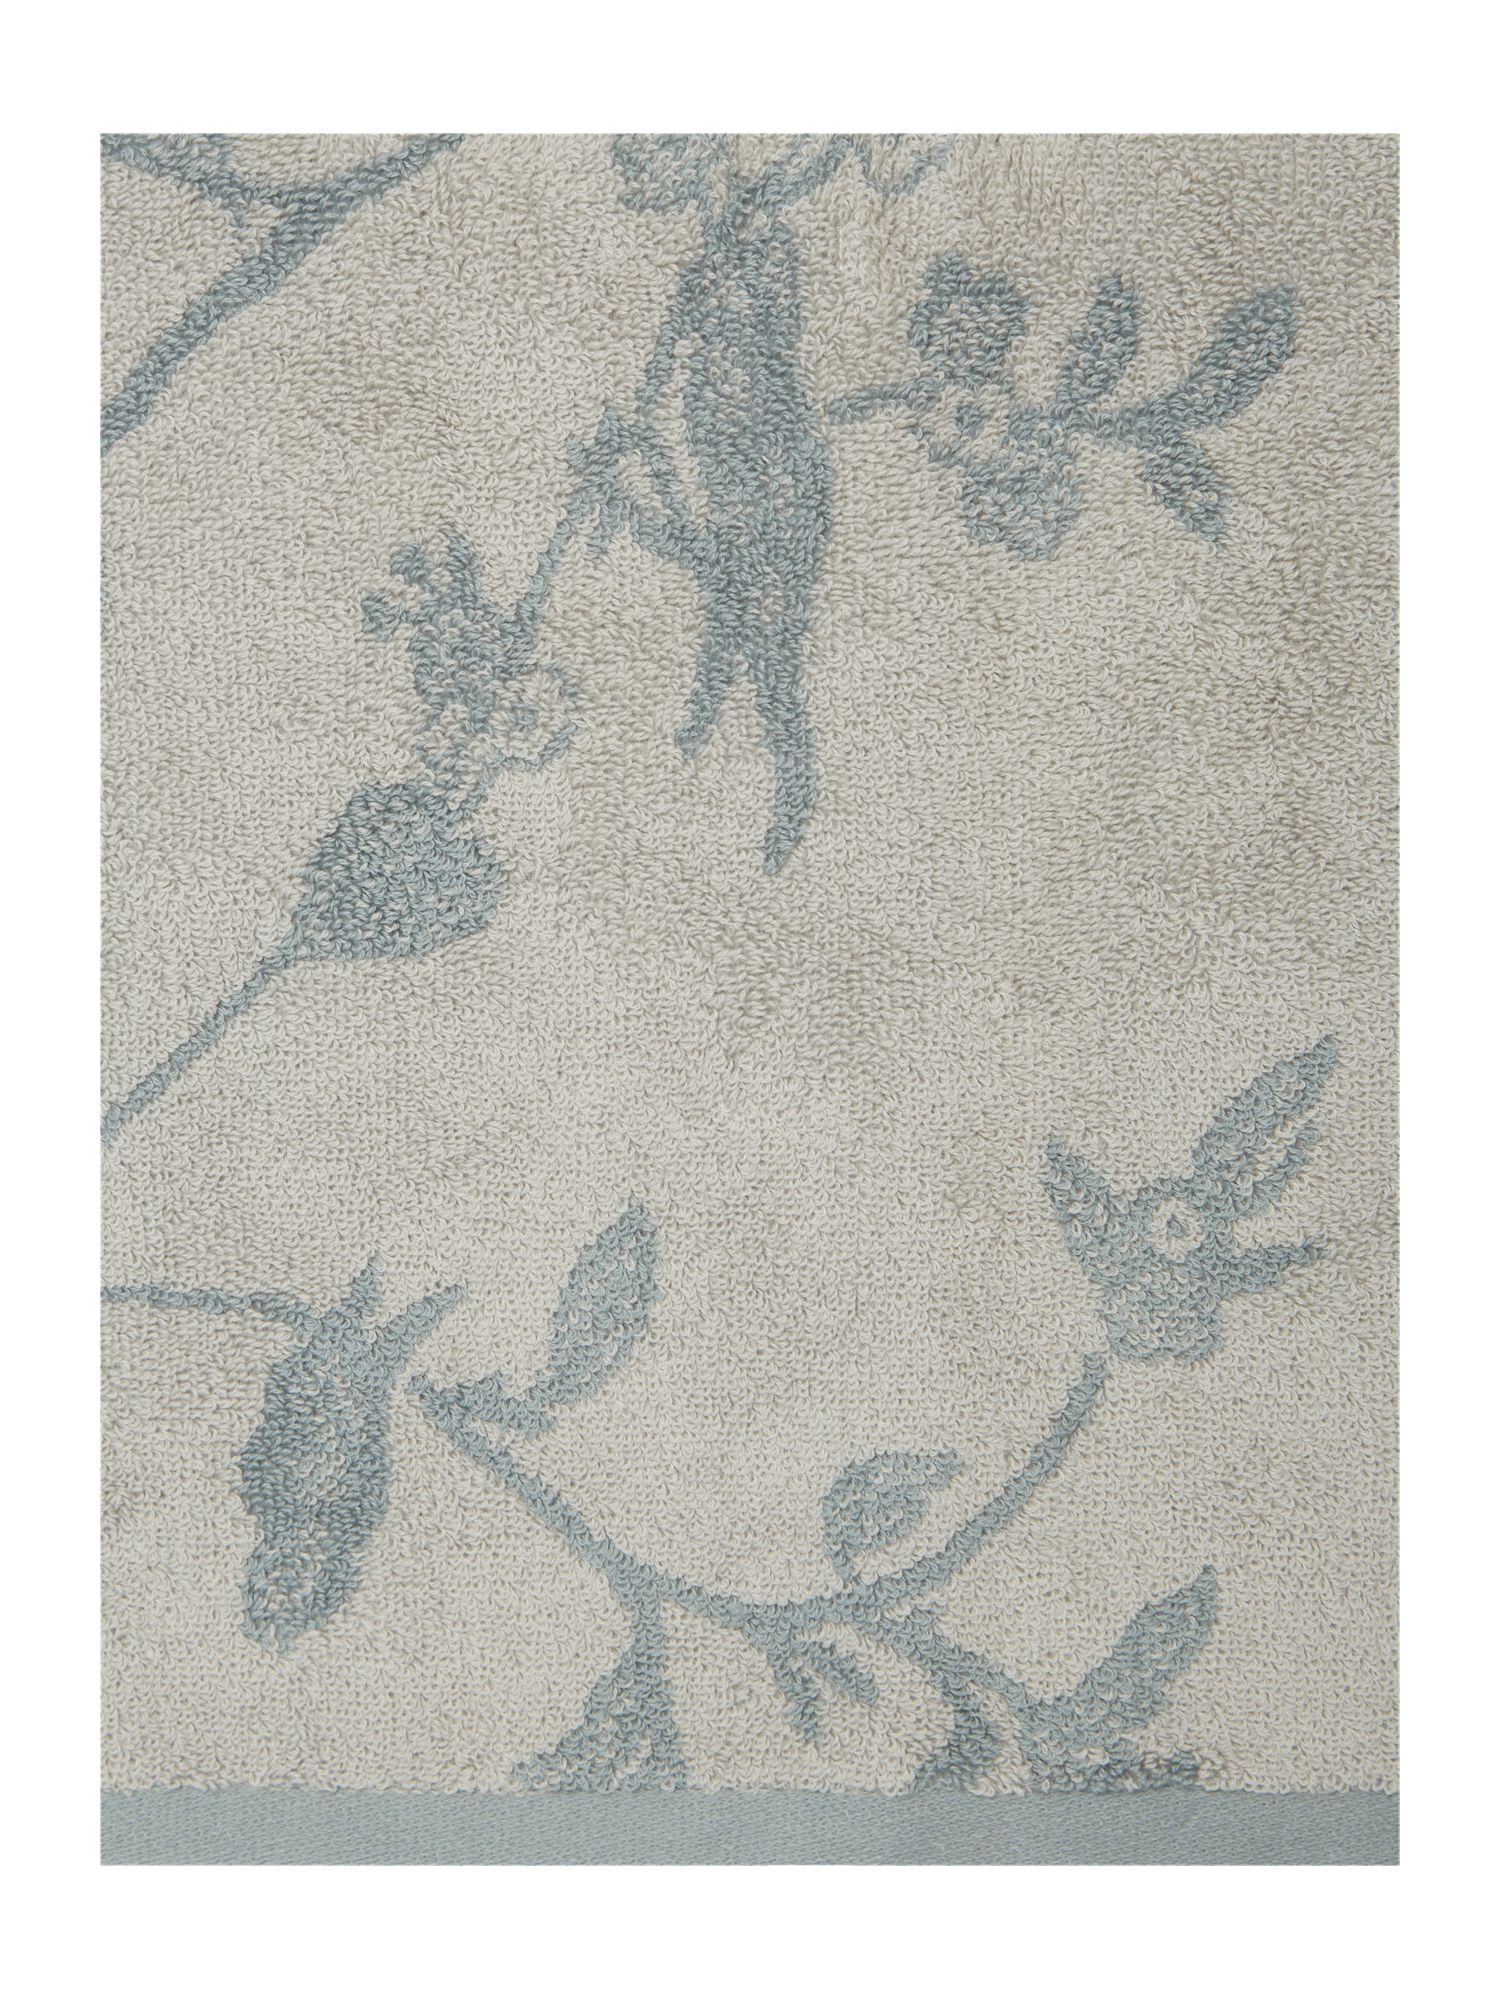 Bird jacquard pack of 2 hand towels